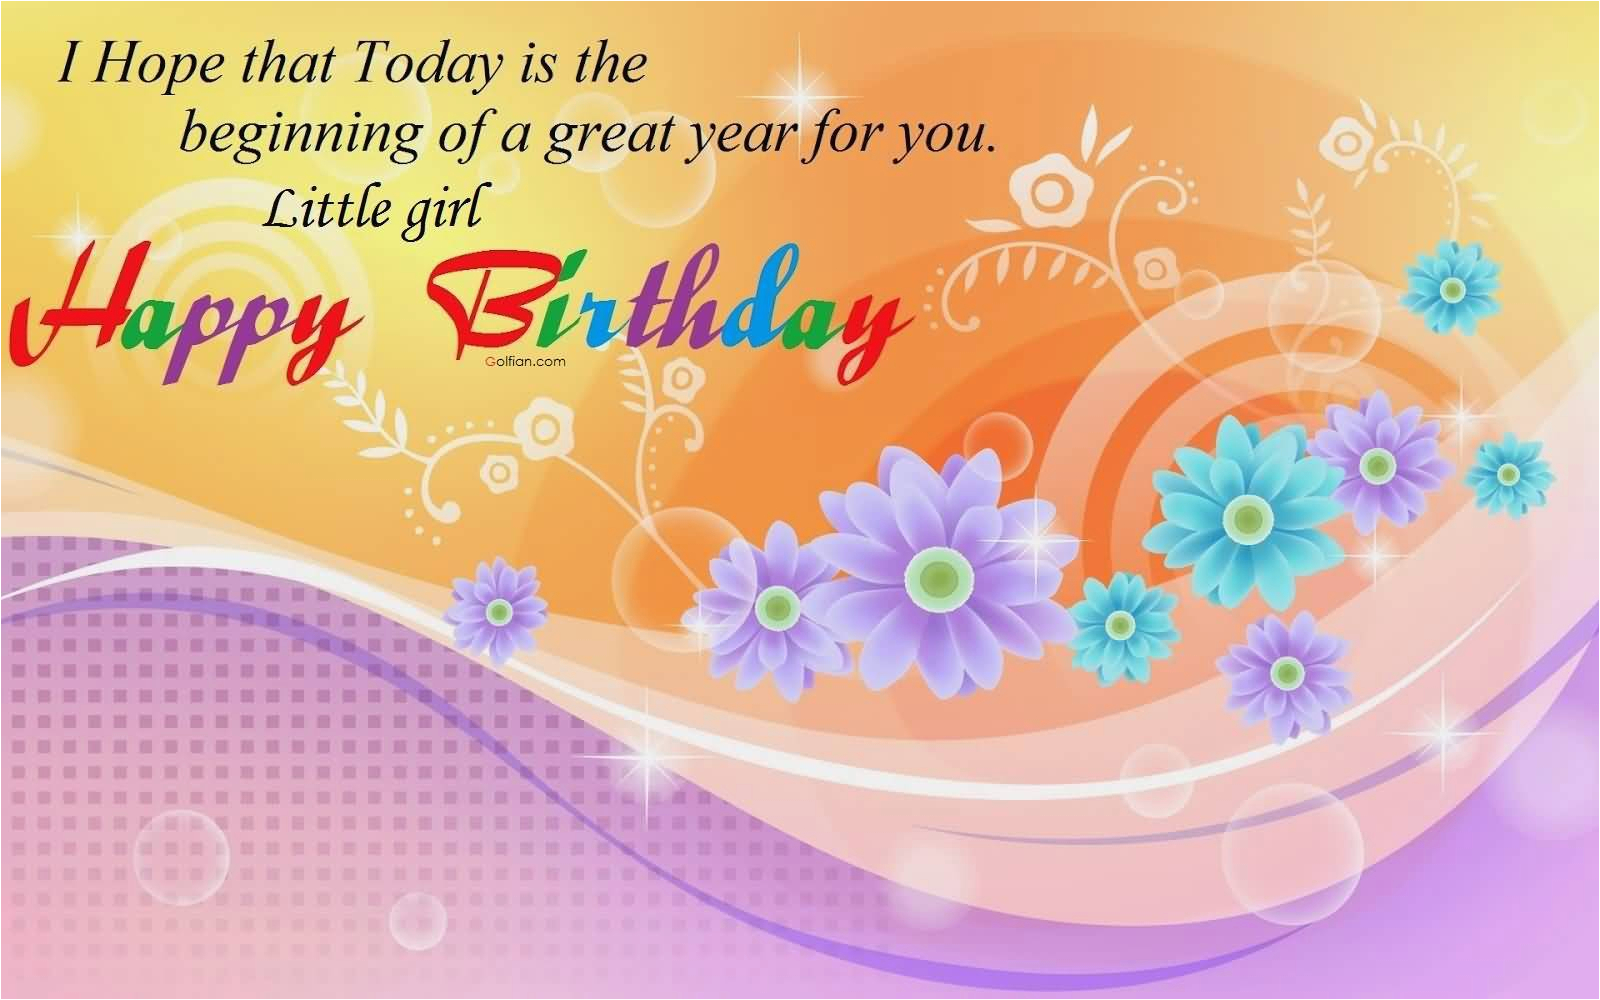 50 beautiful birthday wishes for little girl popular birthday messages